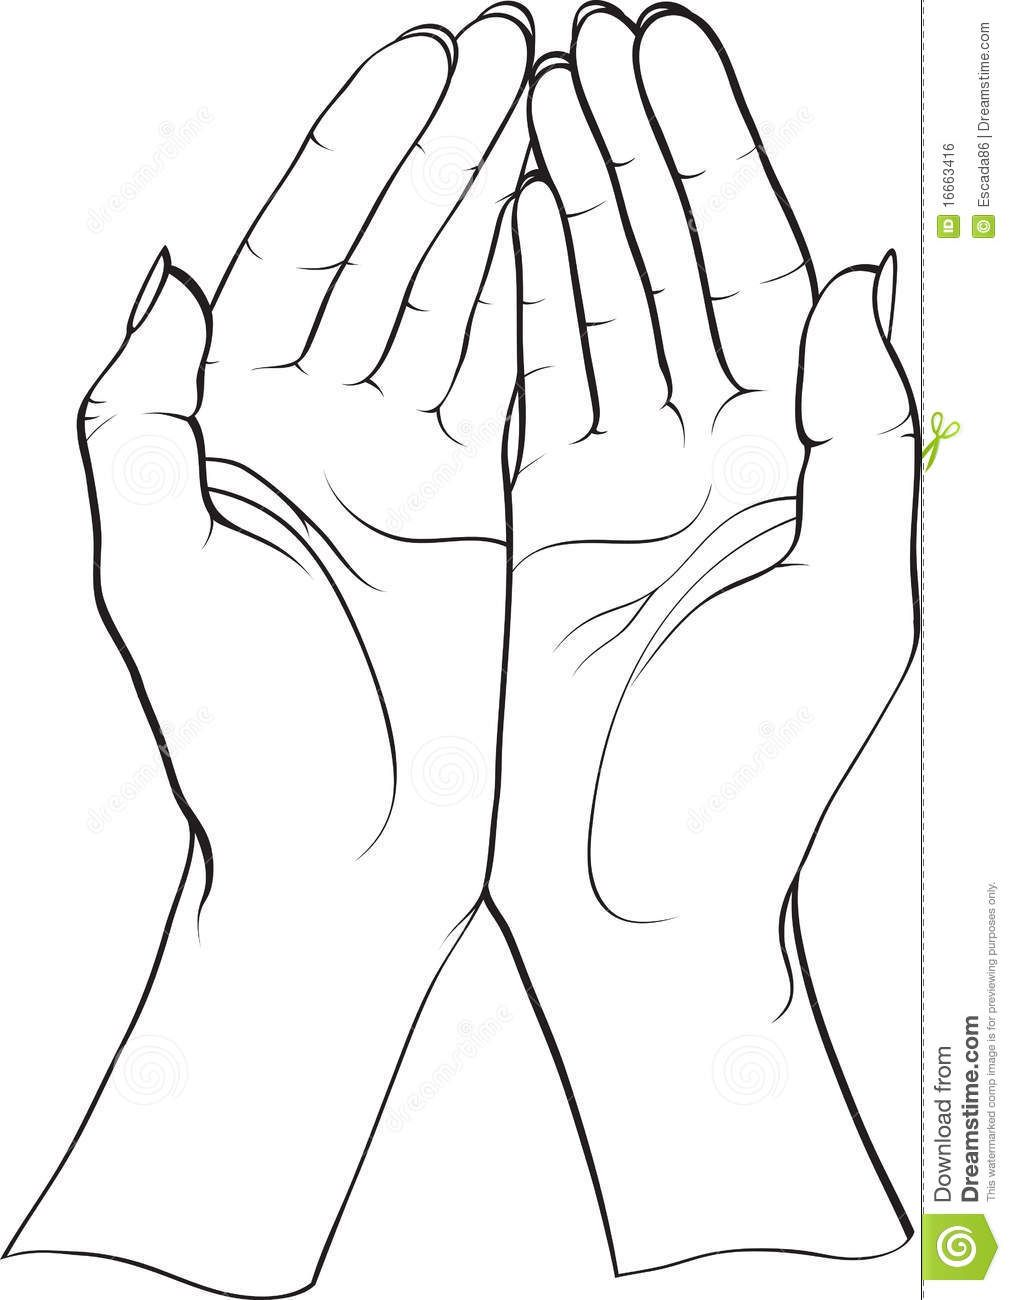 How To Draw Open Cupped Hands.